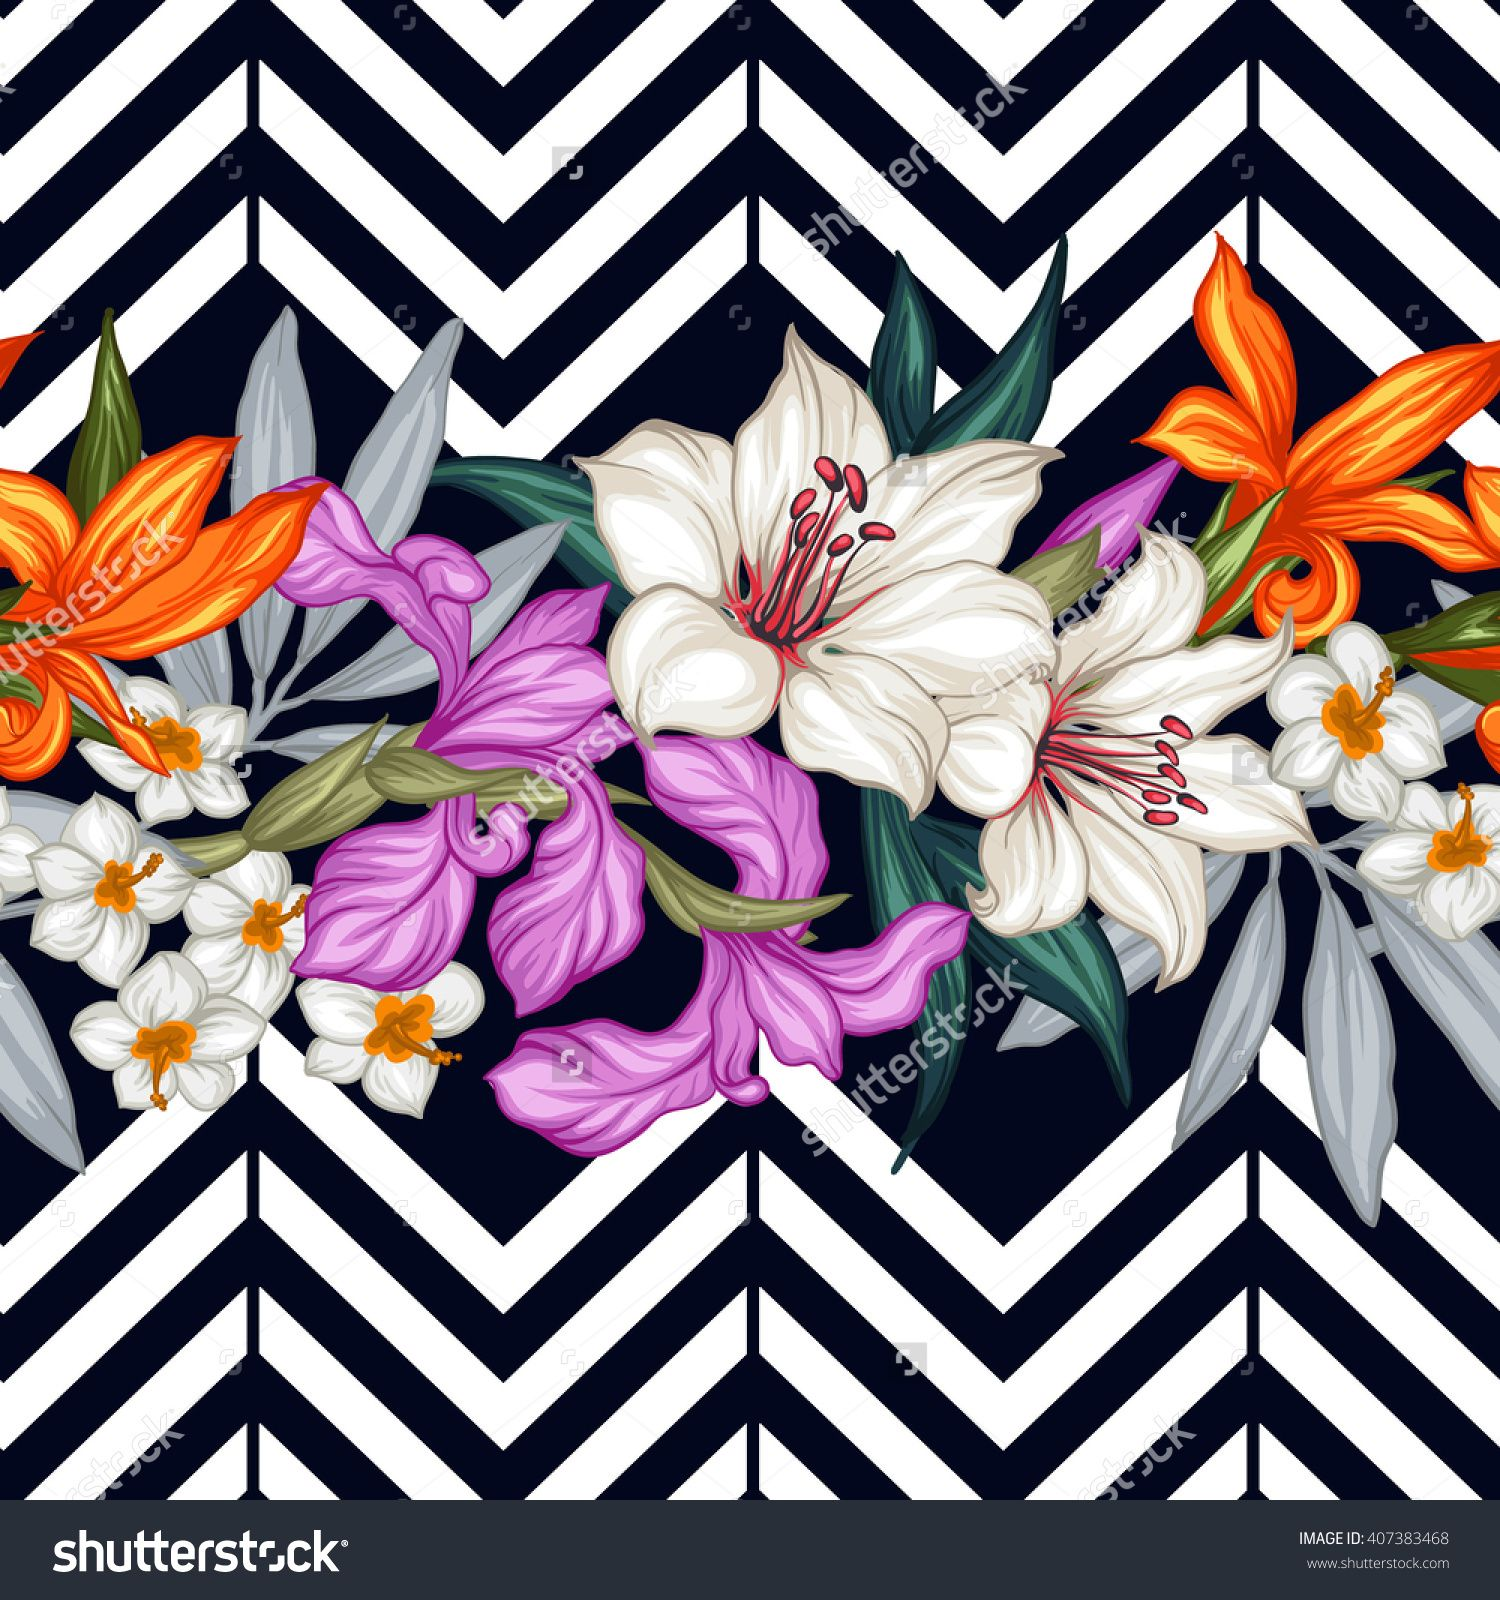 Vector Tropical Leaves And Flowers Seamless Pattern. Hand